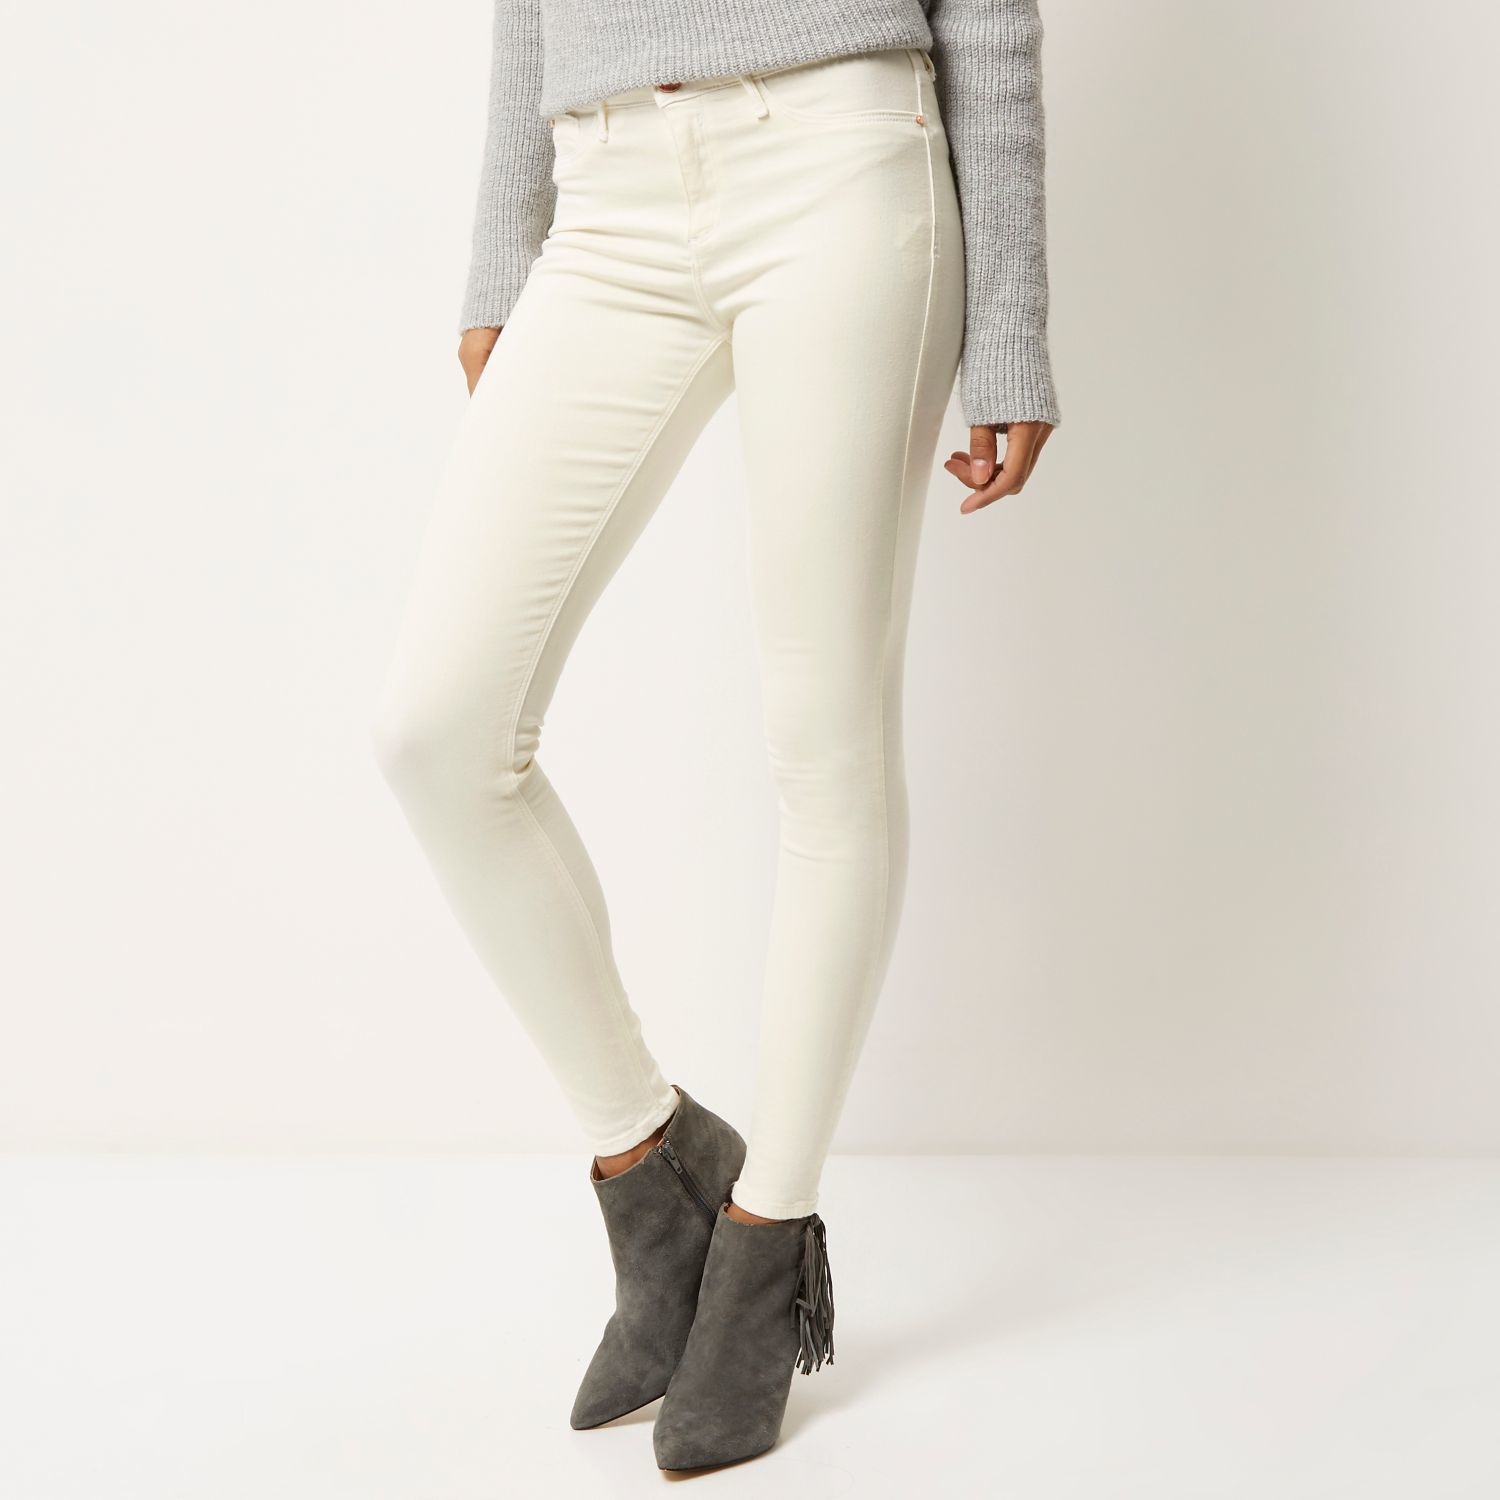 Womens White Molly raw hem jeggings River Island For Sale Online Official Site For Sale Buy Cheap 100% Original 8IufQmm